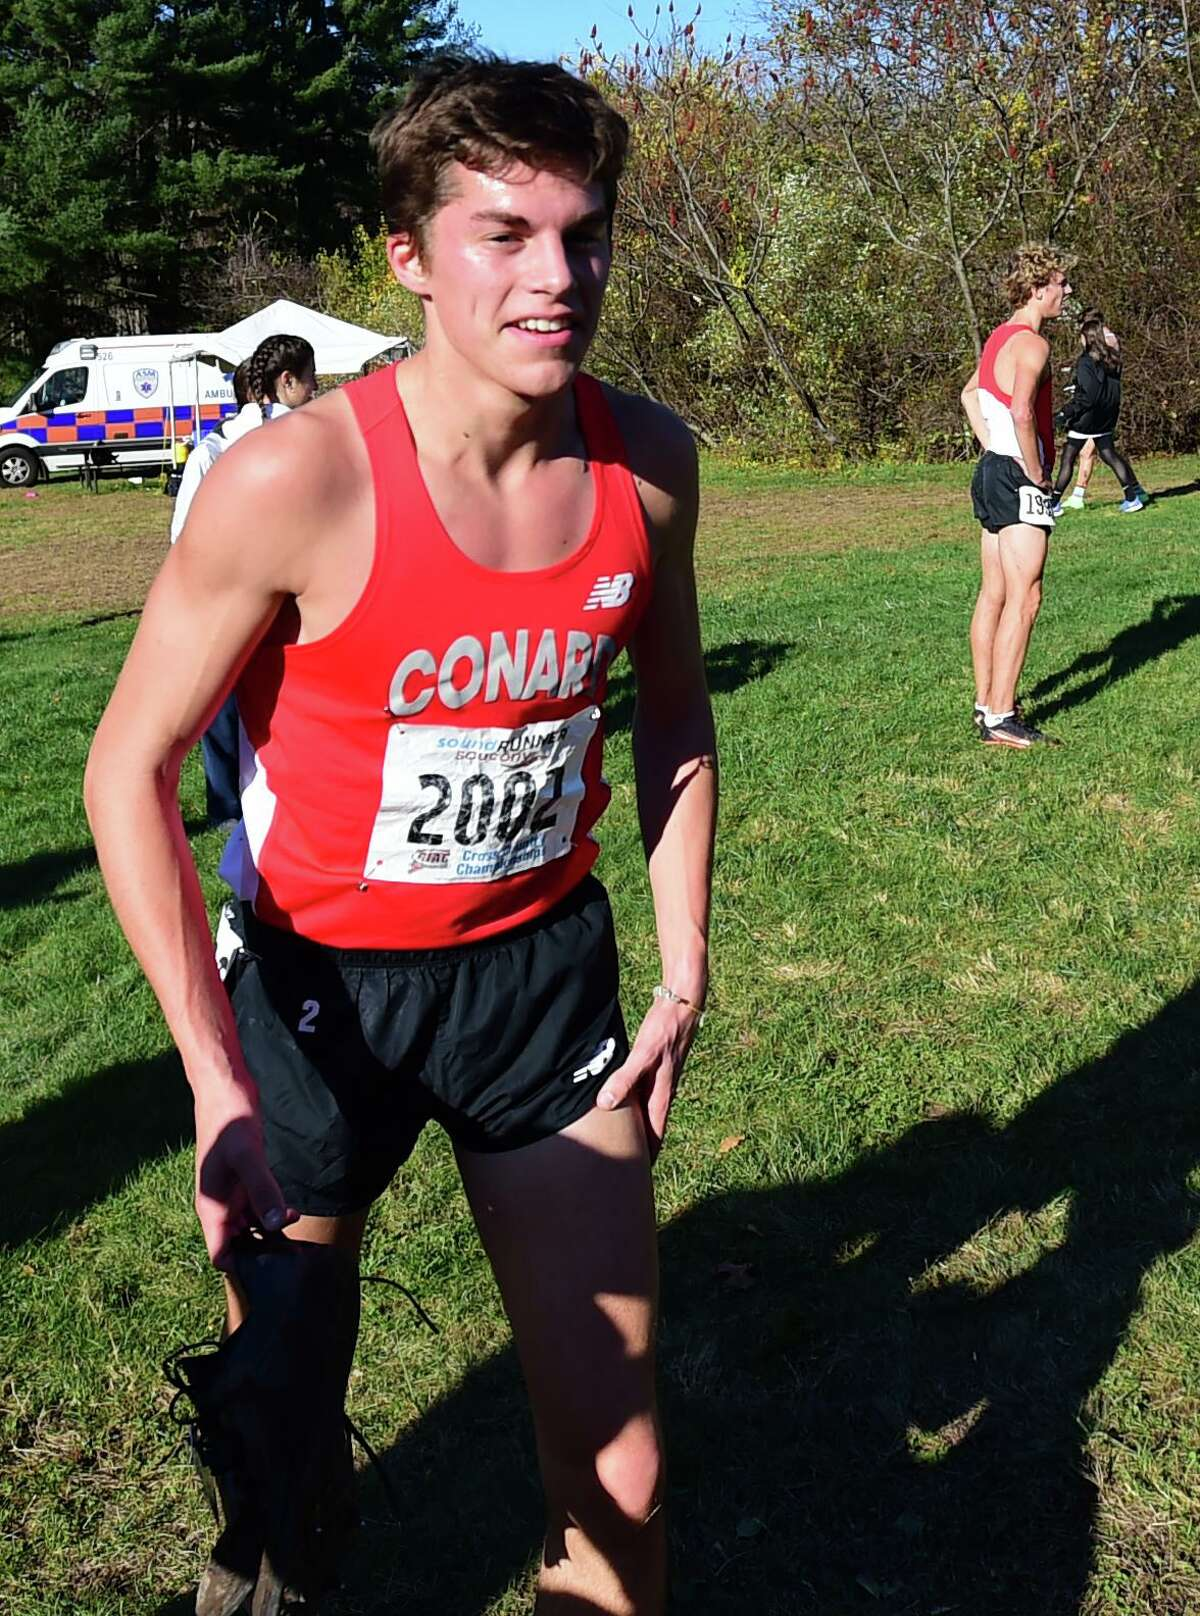 Manchester, Connecticut -Wednesday, November 1, 2019: 1st place finisher Gavin Sherry of Conard H.S. after wining the race during the CIAC Boys Cross Country Open Championship Friday at Wickham Park in Manchester: